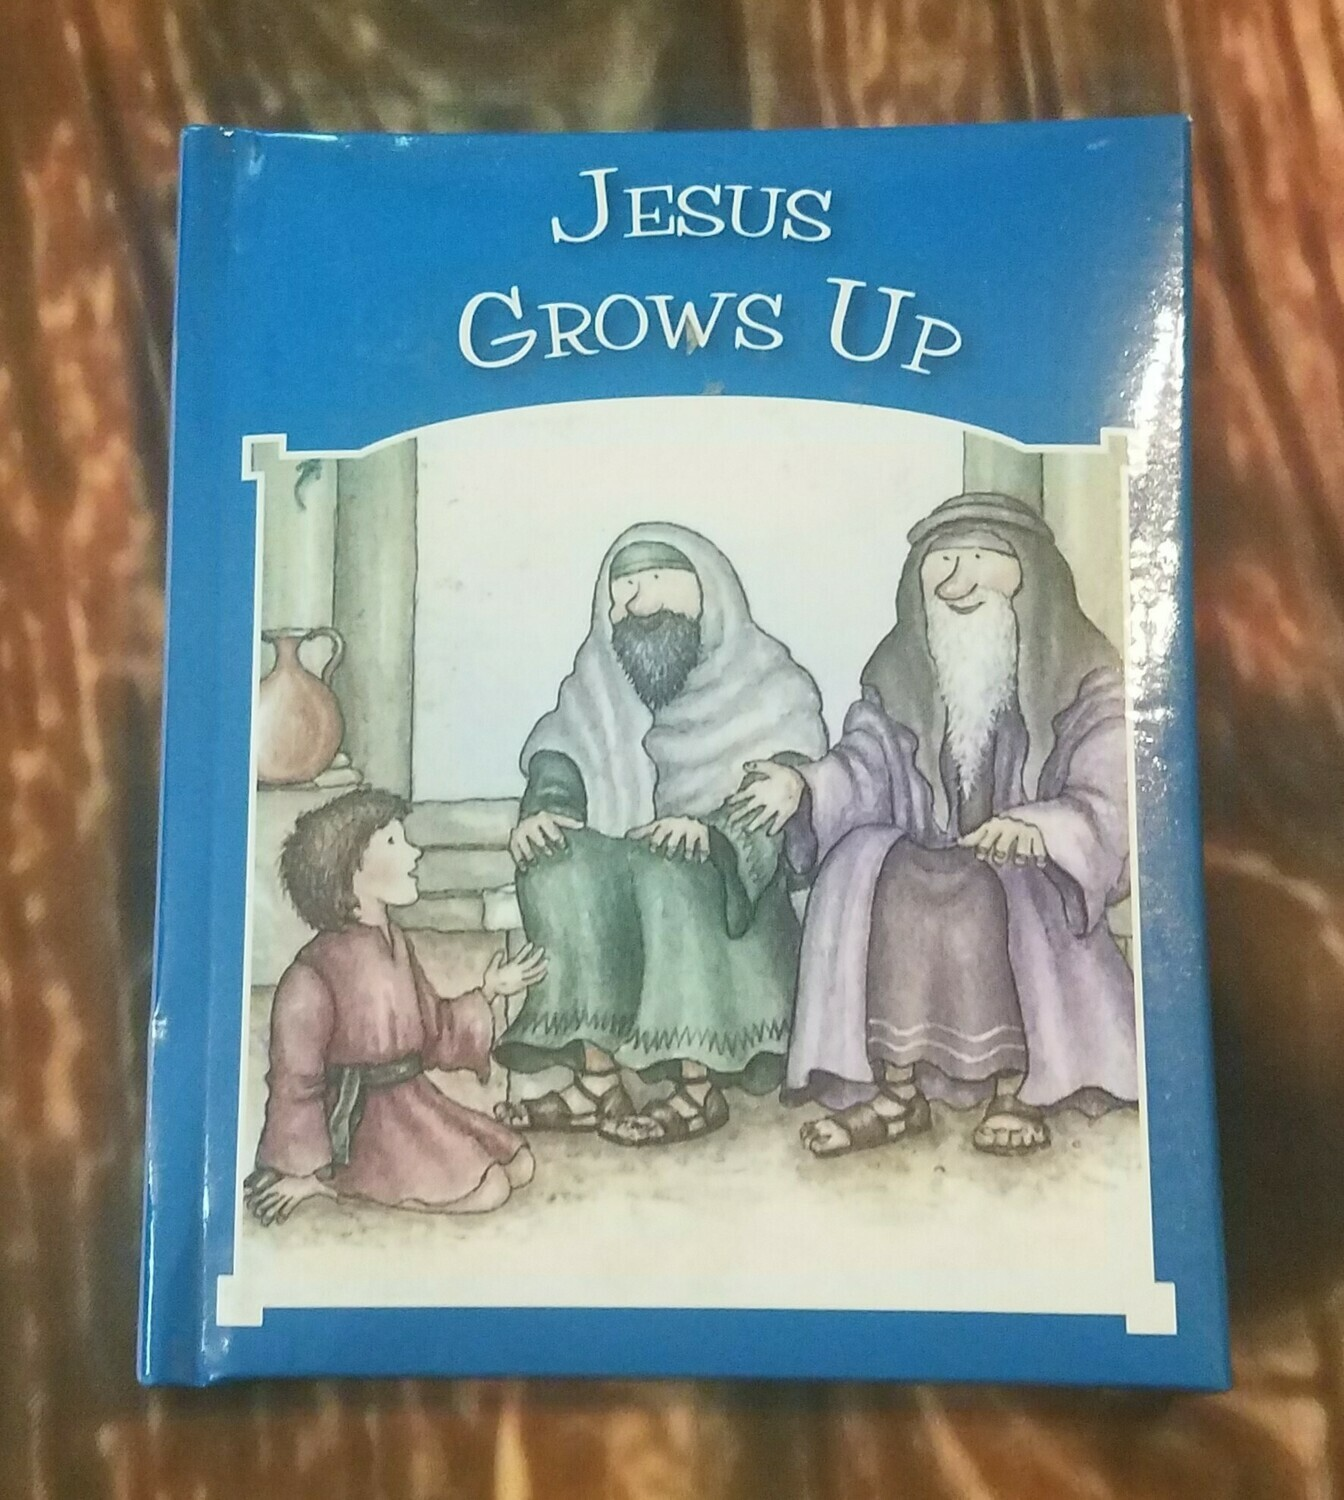 Jesus Grows Up by Tim and Jenny Wood